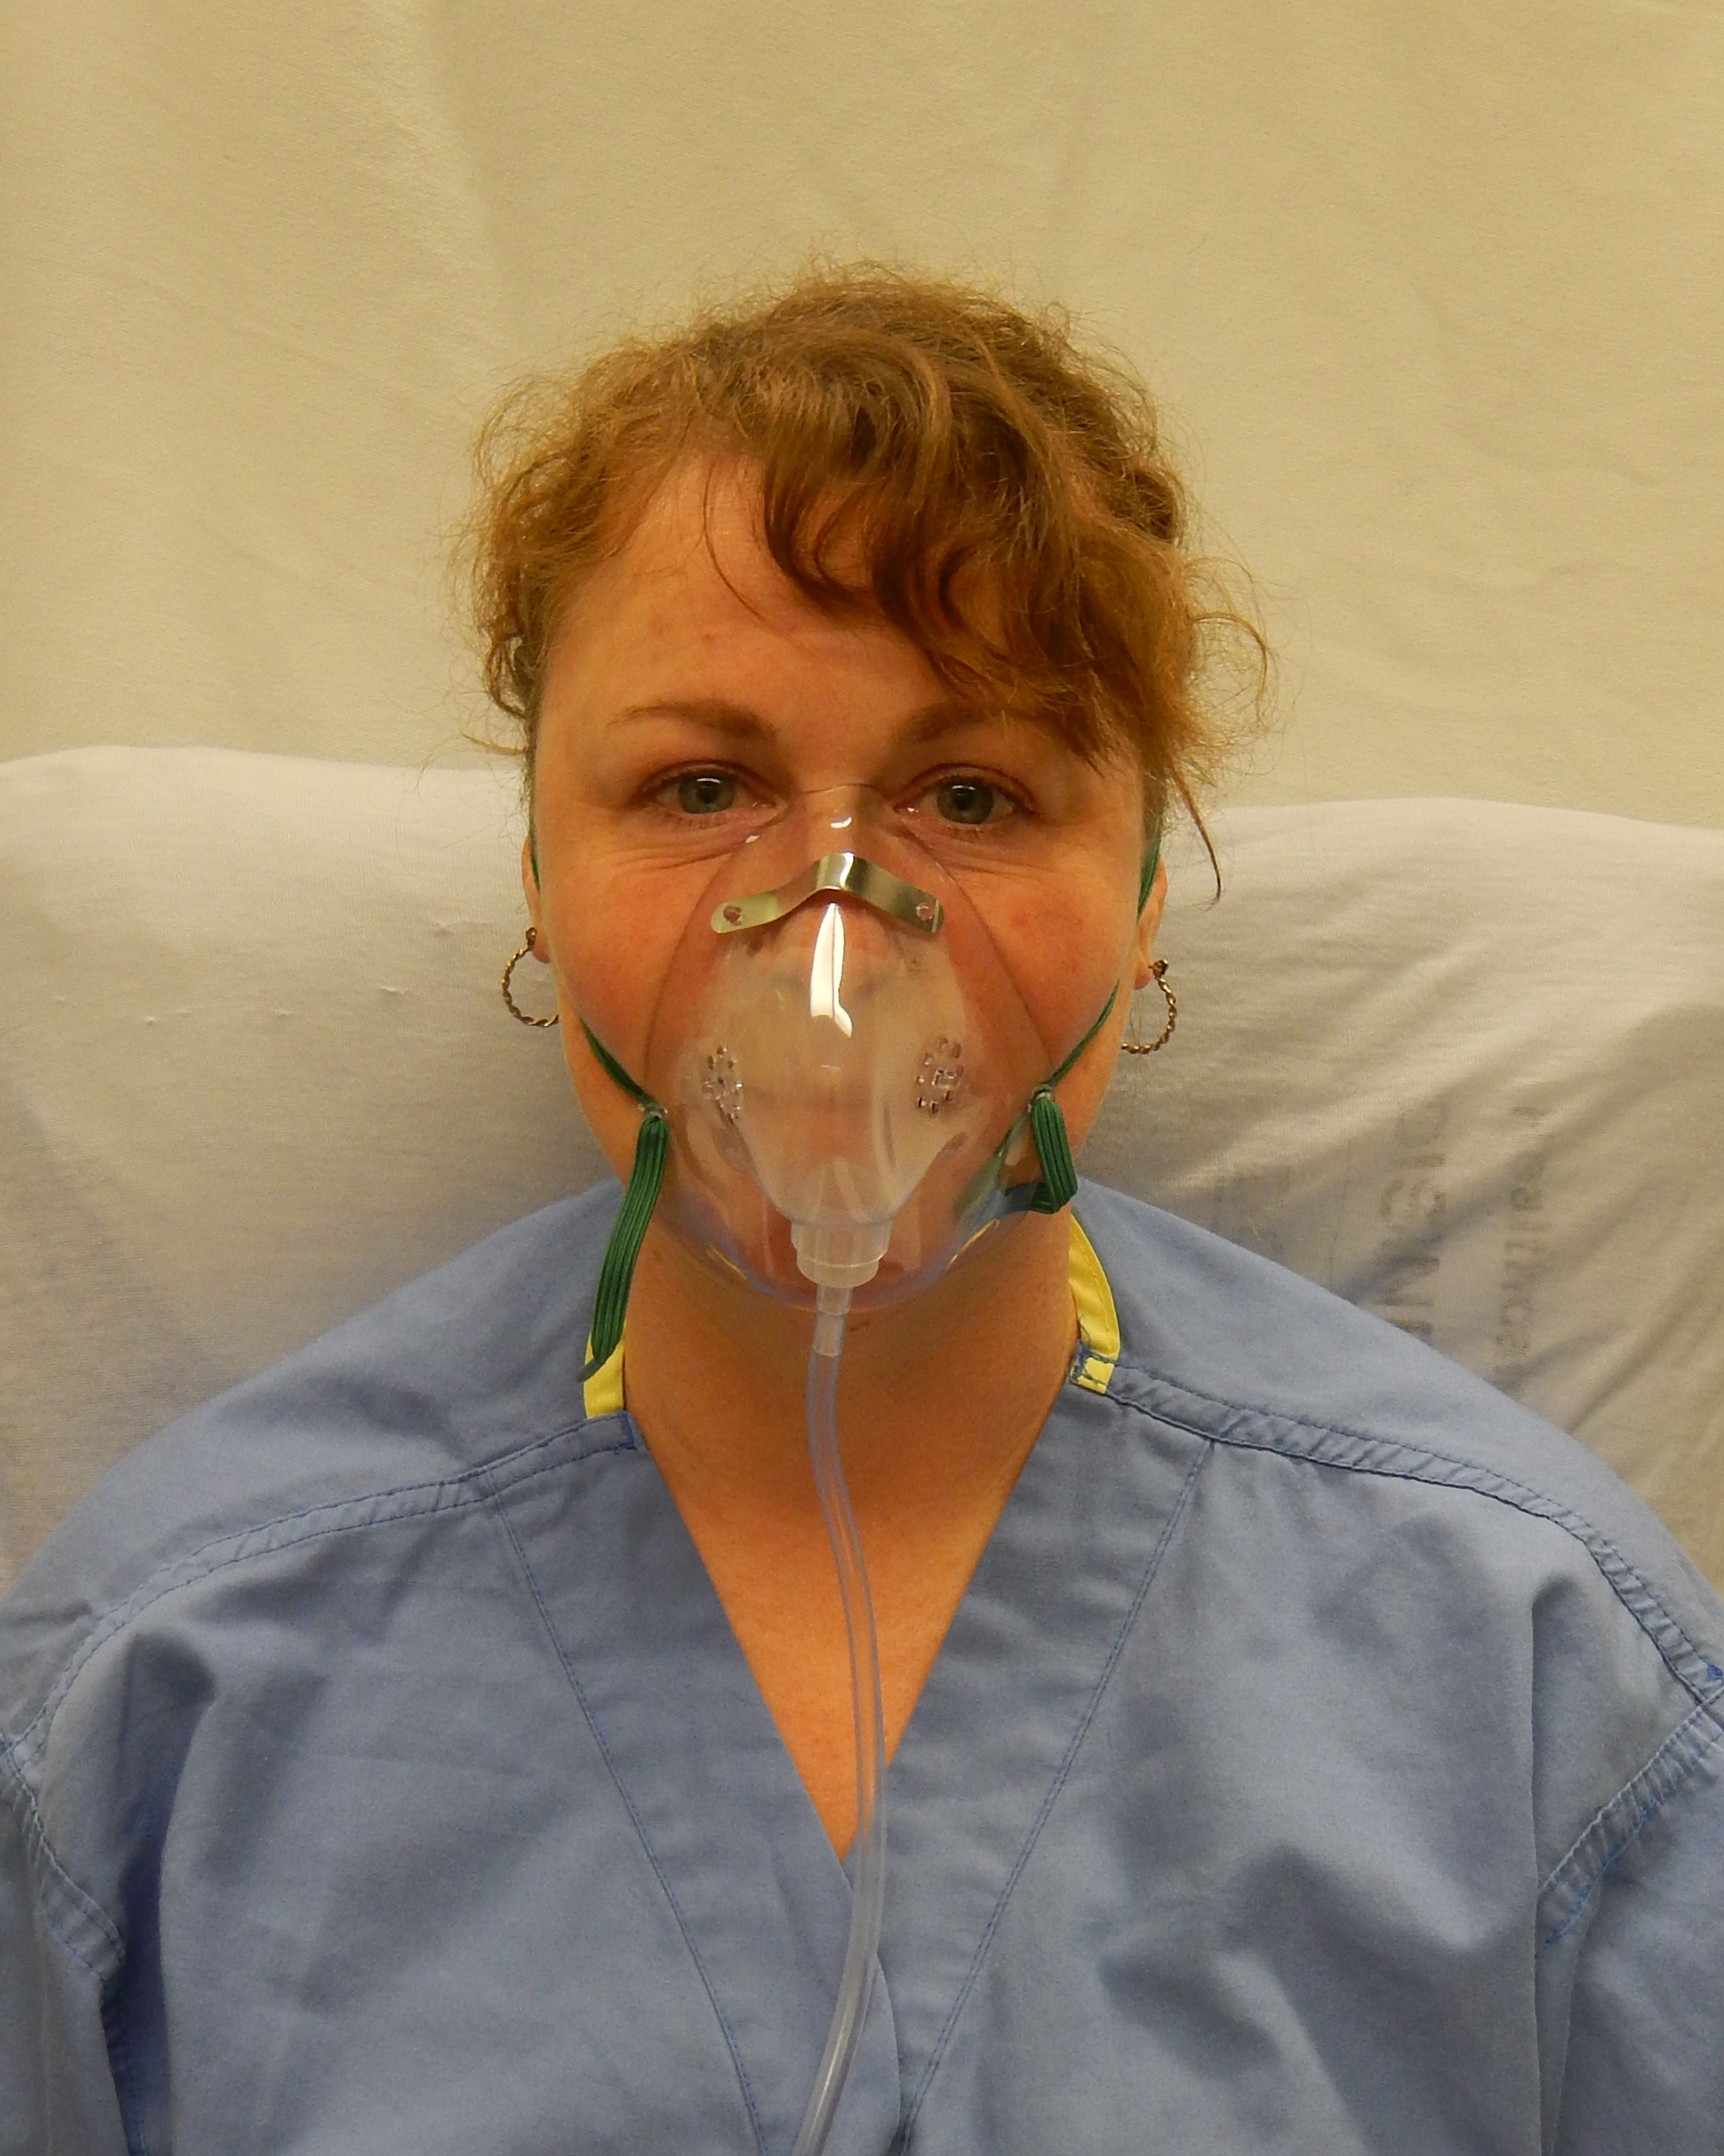 Underwater Breathing Mask Without Oxygen Tanks : underwater, breathing, without, oxygen, tanks, Oxygen, Wikipedia